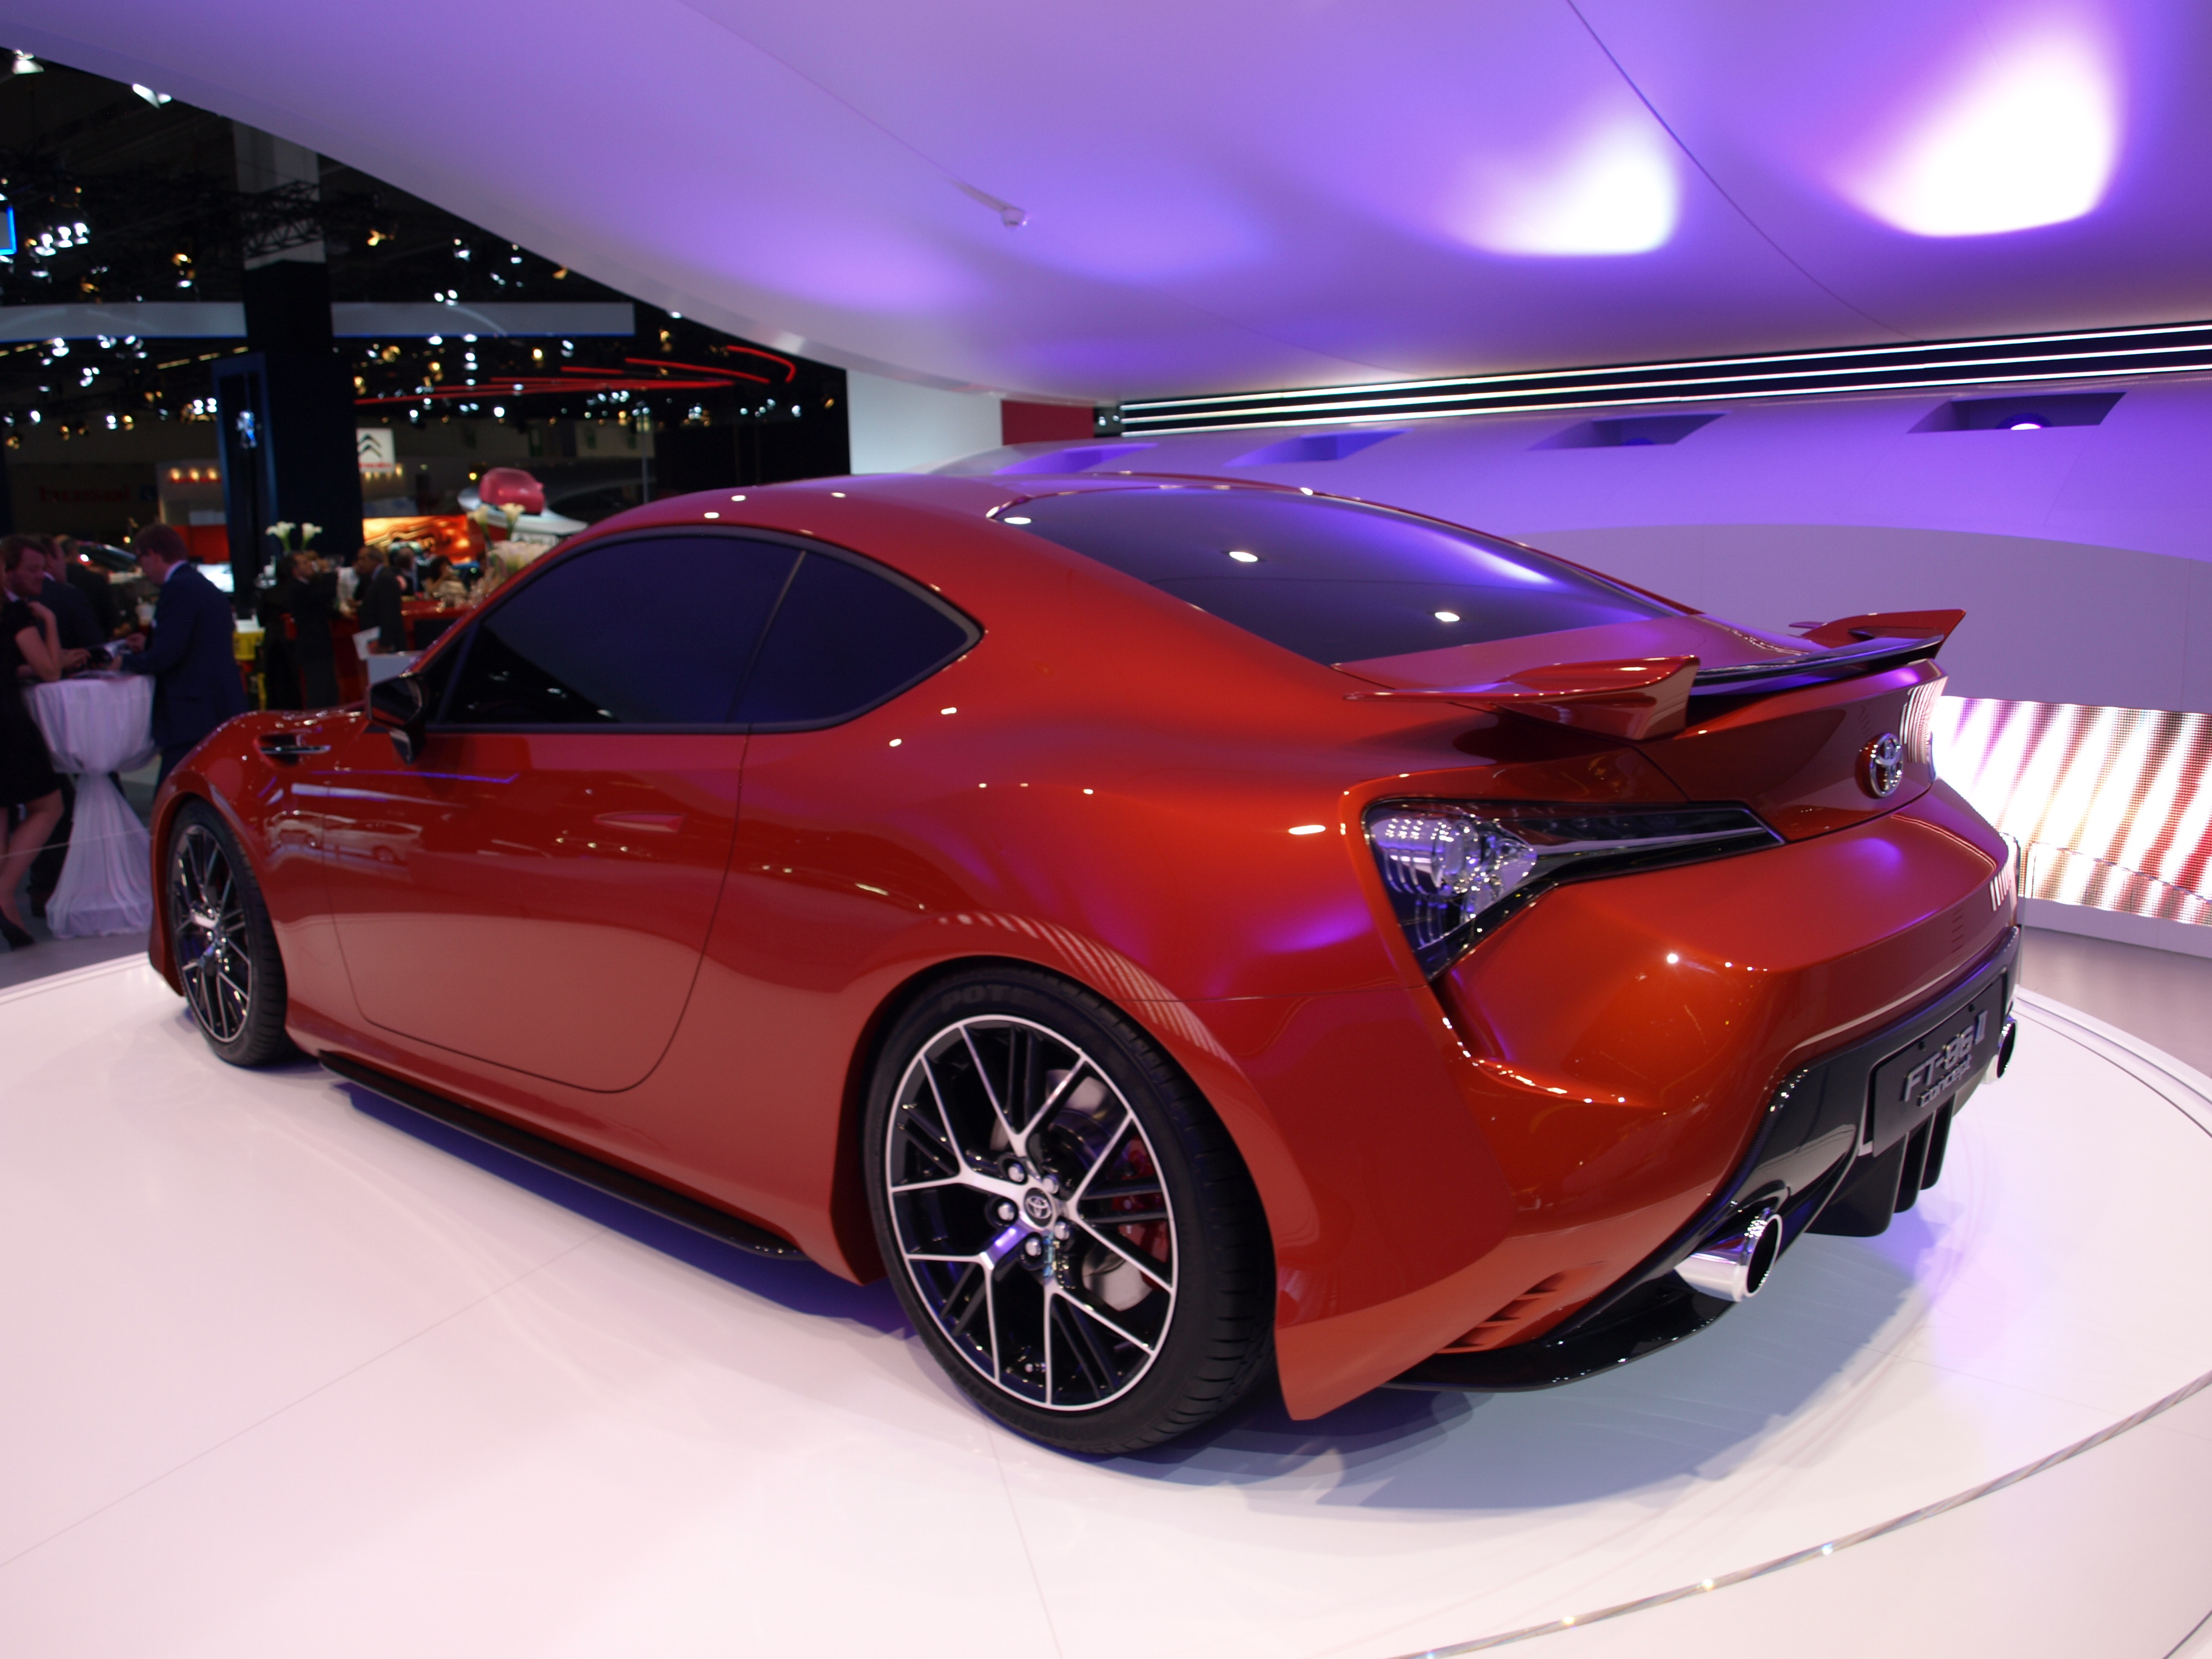 http://images.caradisiac.com/images/2/4/7/0/72470/S0-Francfort-2011-Toyota-FT-86-II-concept-237757.jpg